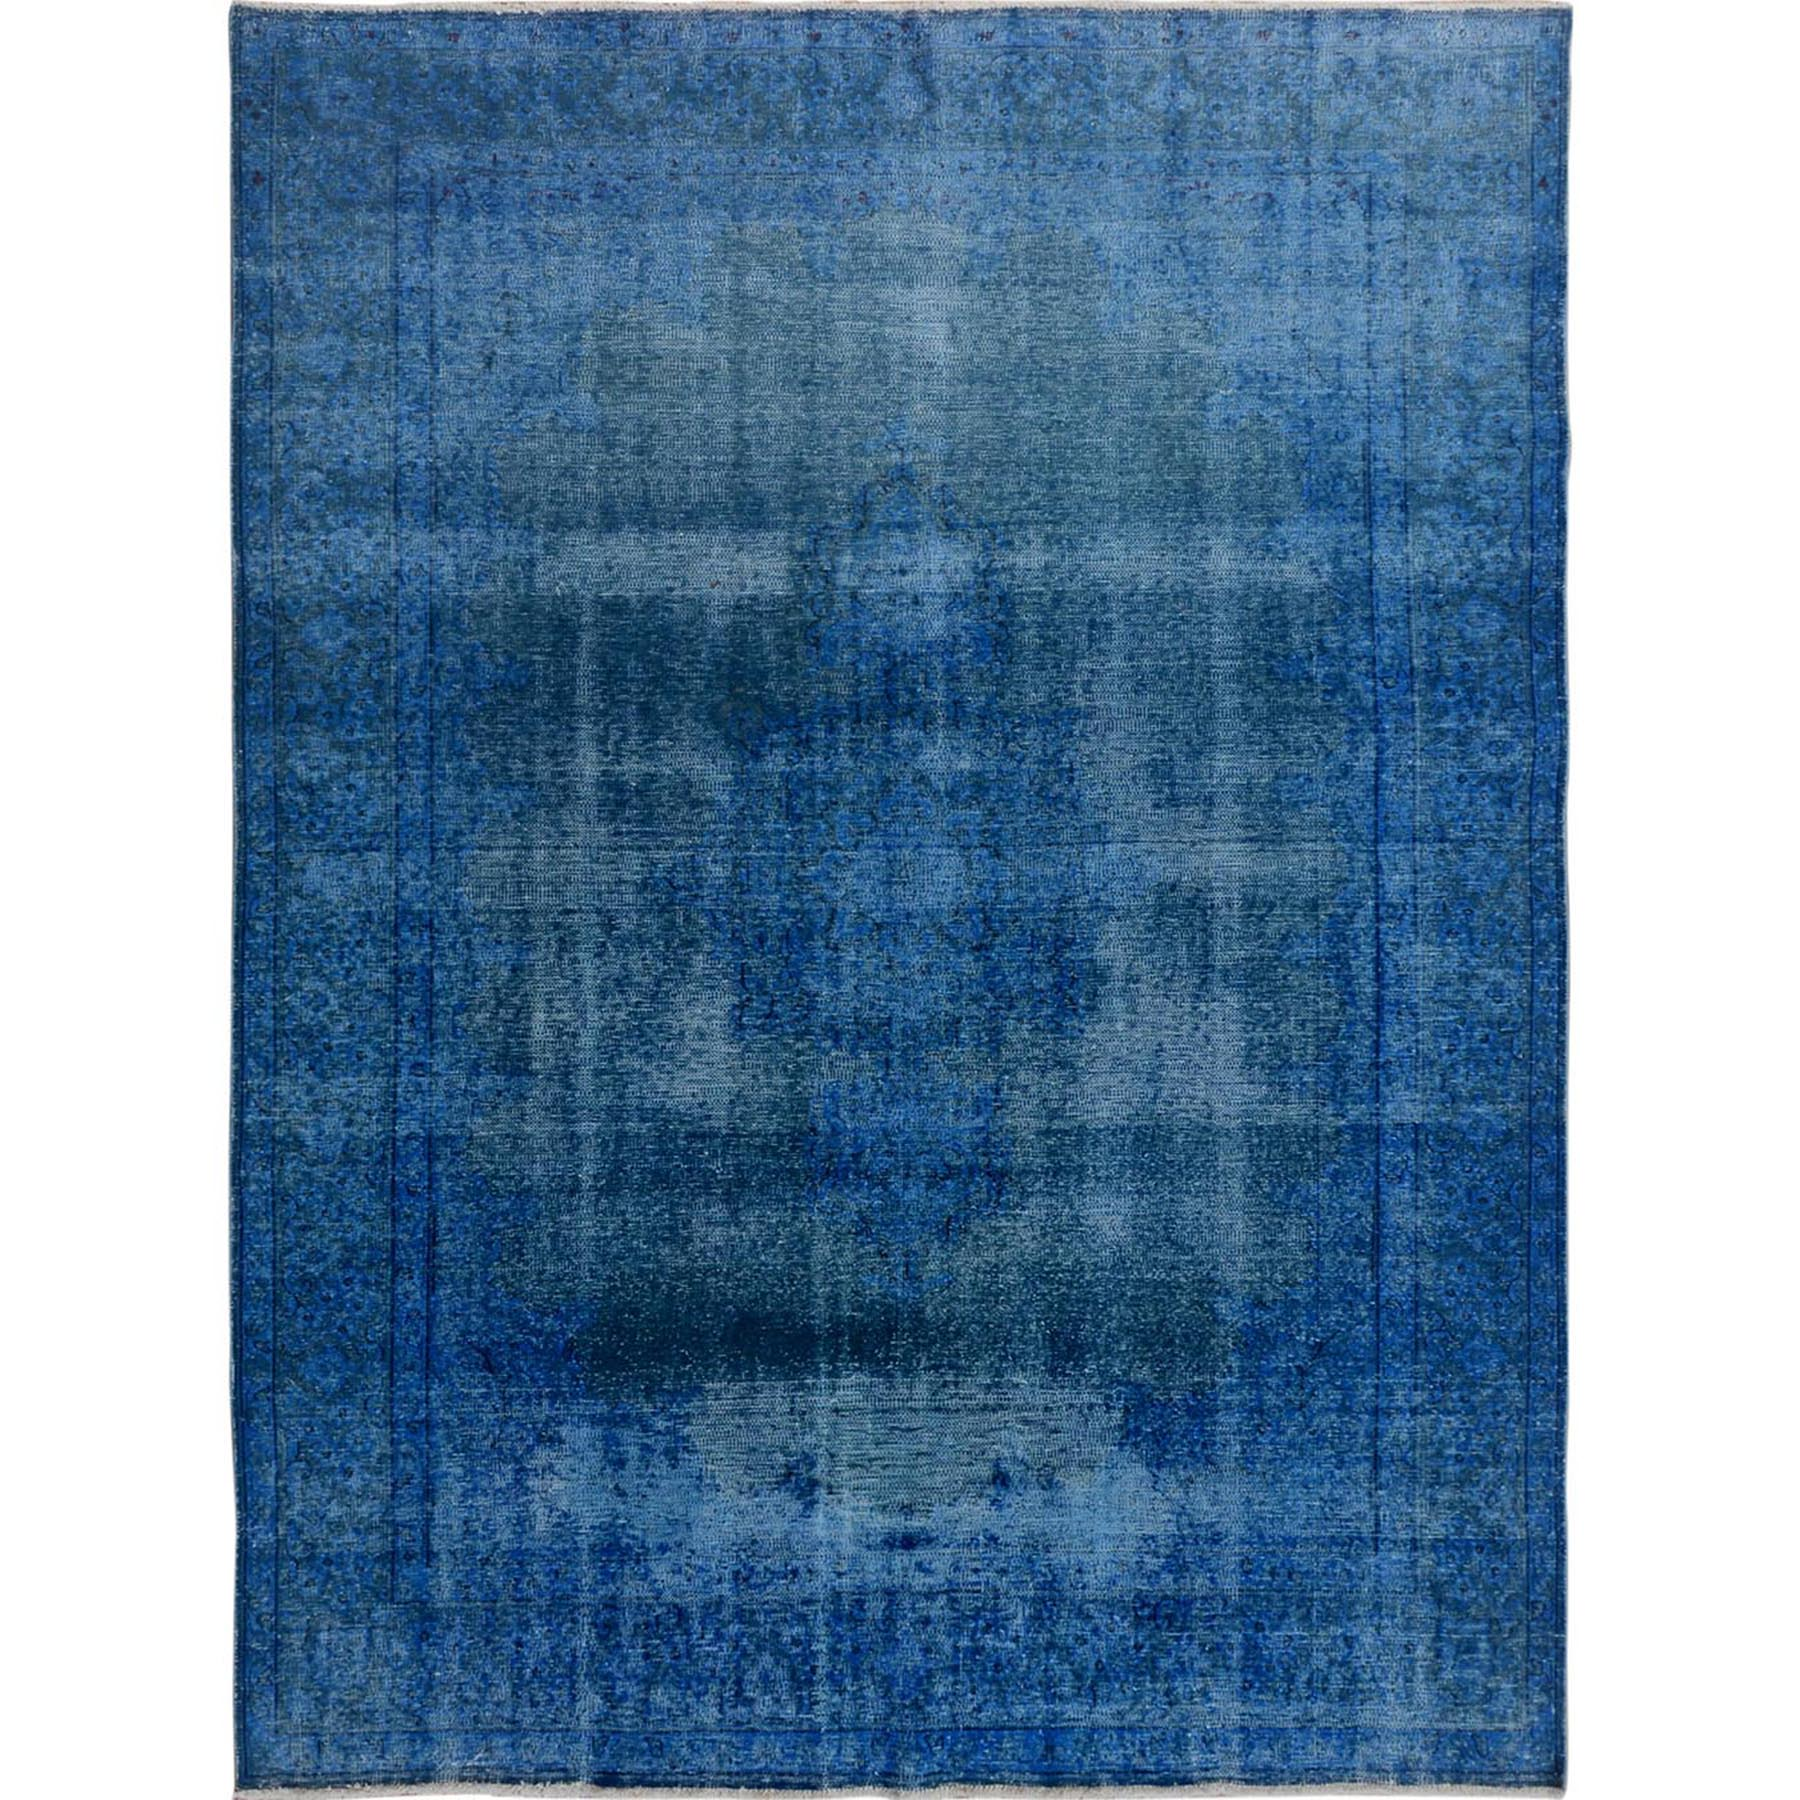 """7'X9'3"""" Blue Overdyed Clean Worn Down Vintage Persian Kerman Pure Wool Hand Knotted Oriental Rug moae7d07"""